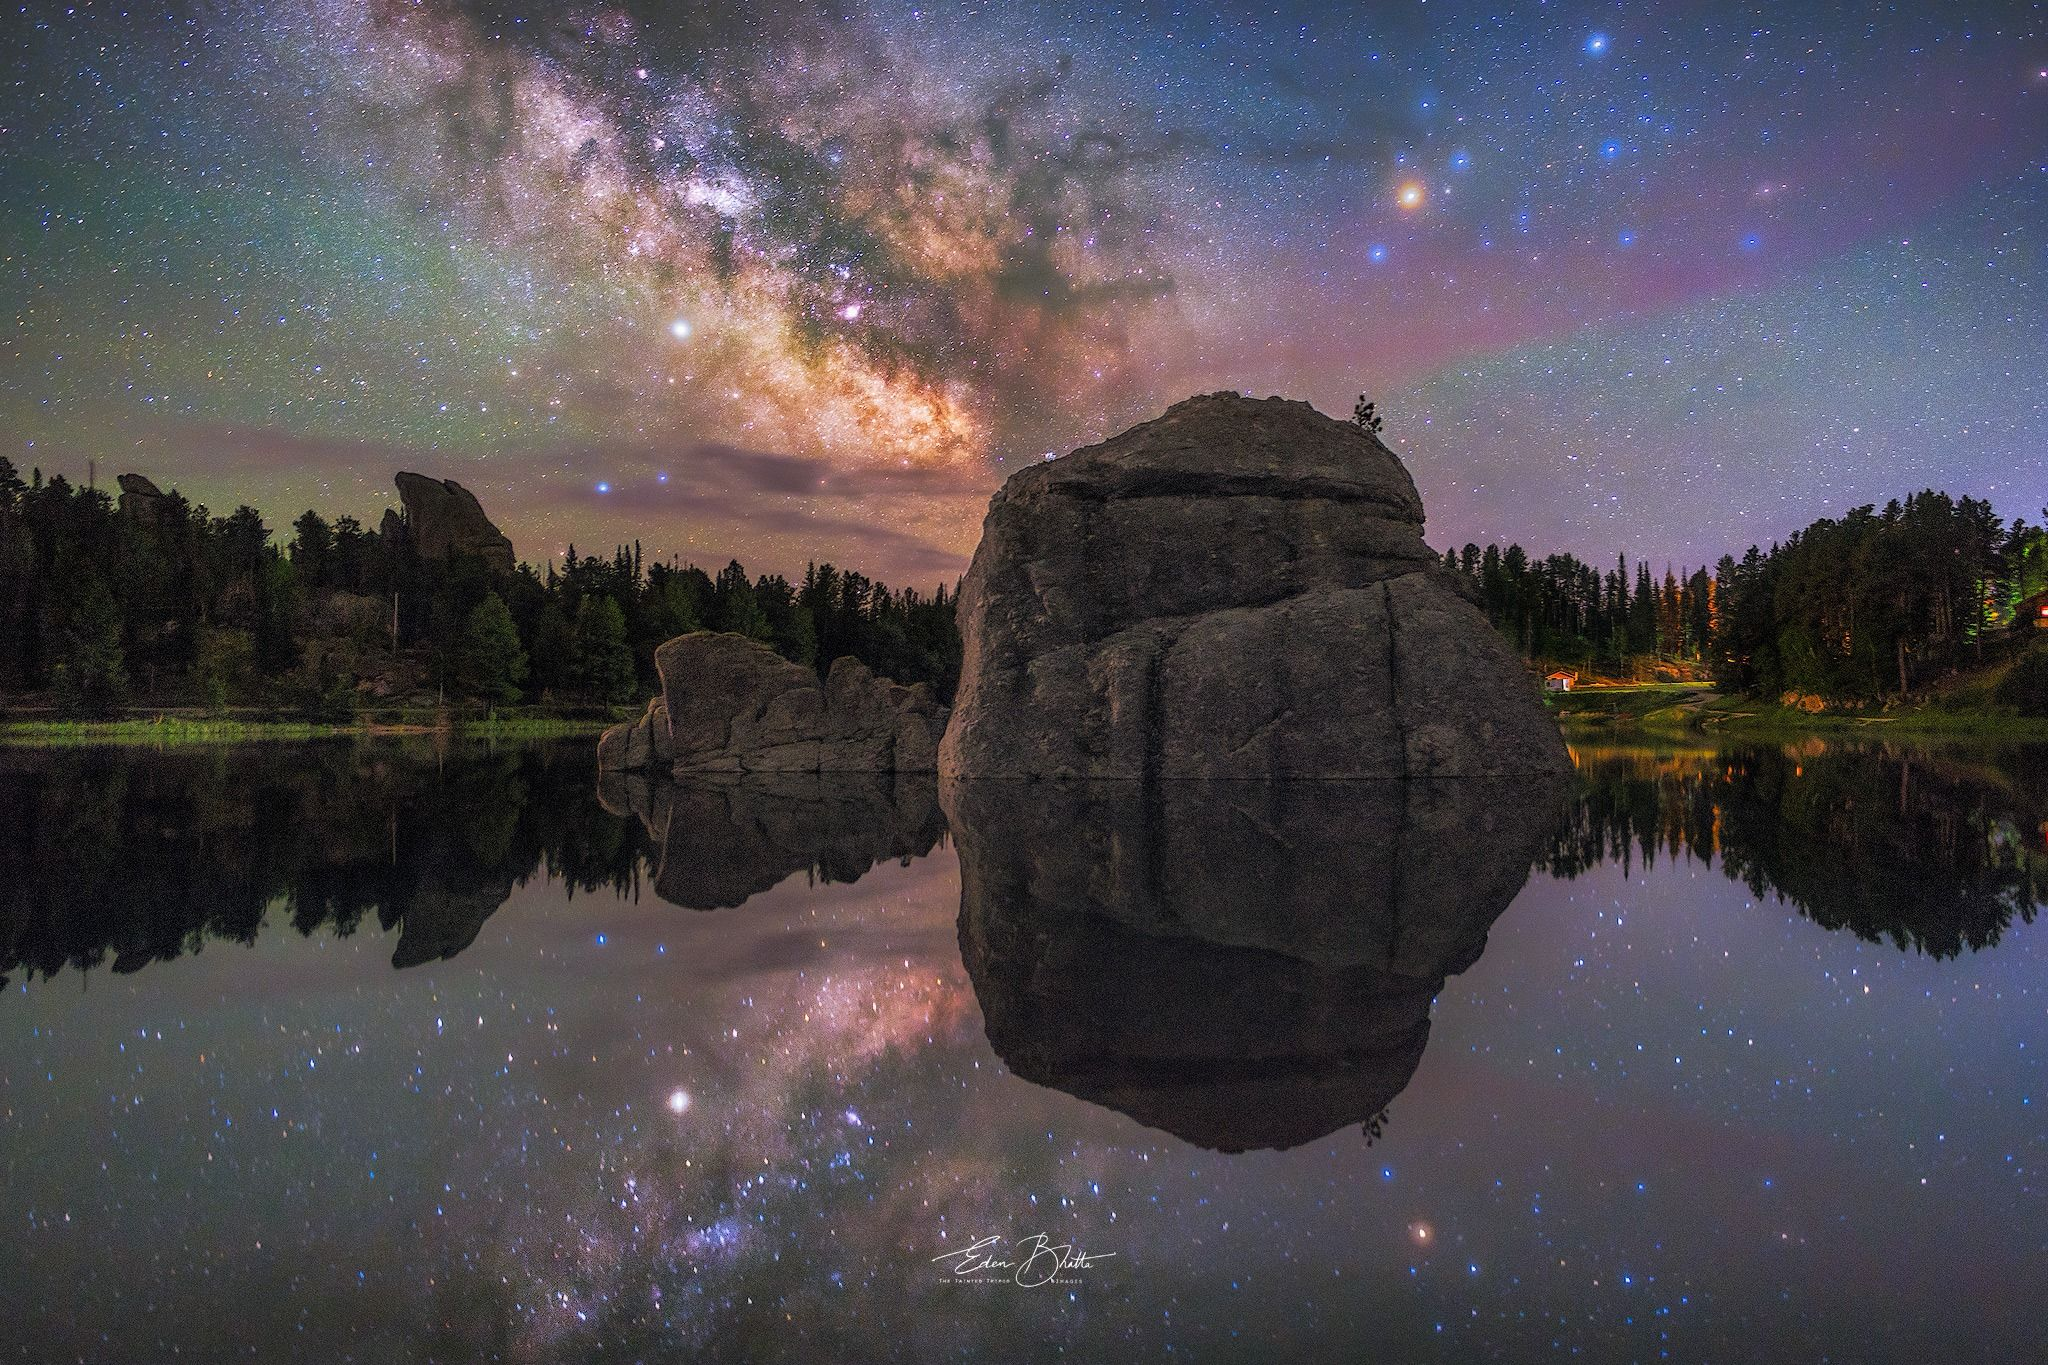 Milky Way reflection at Sylvan Lake South Dakota by Eden Bhatta